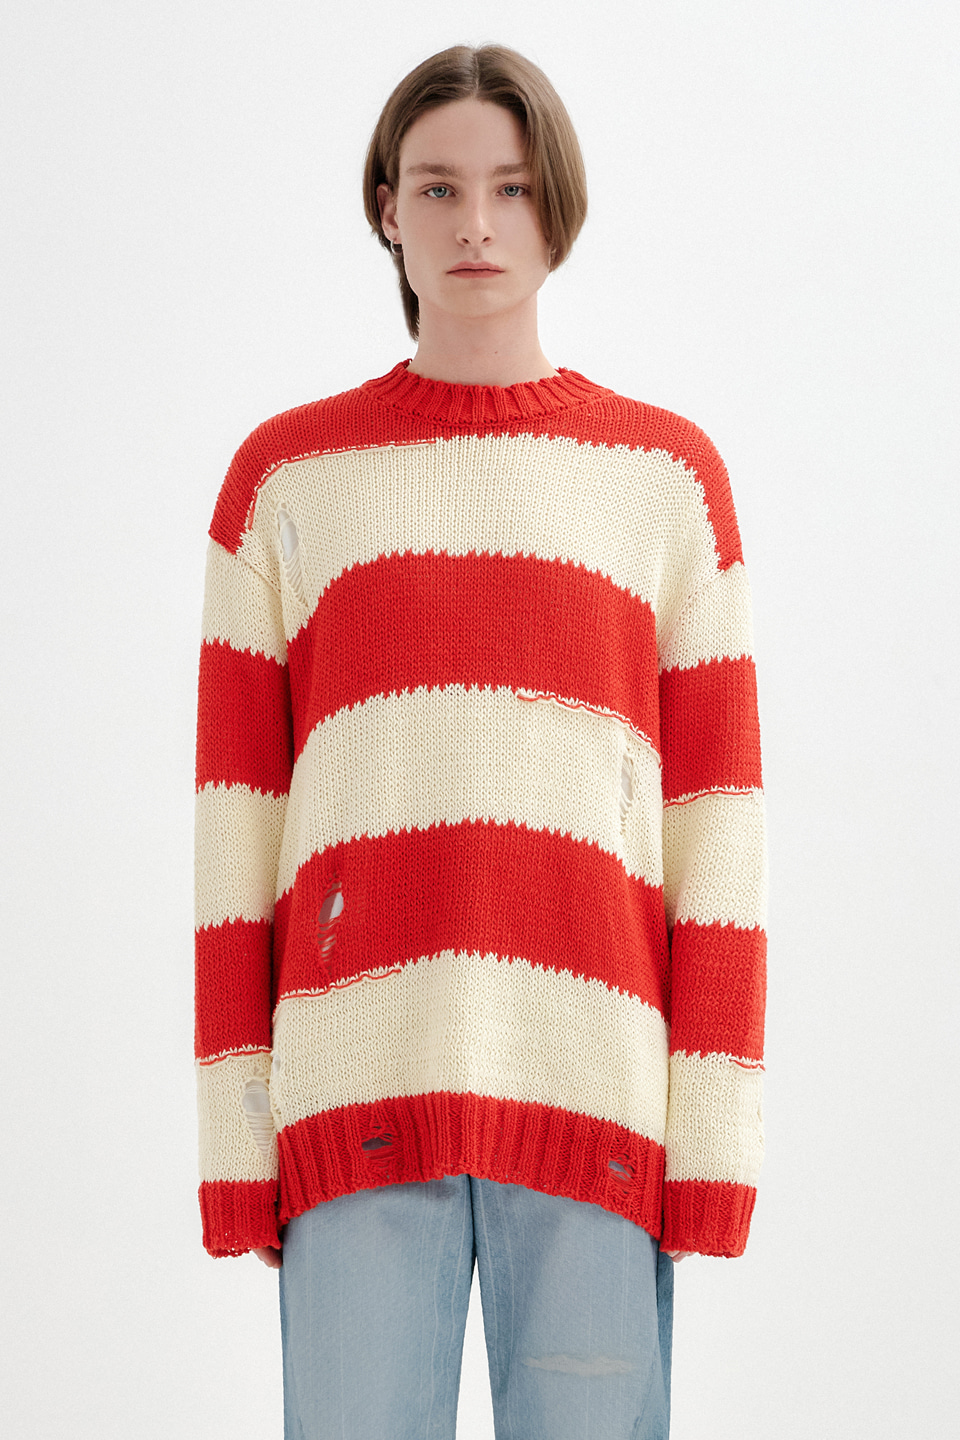 [UNISEX] VINTAGE CUT STRIPE KNIT TOP - RED